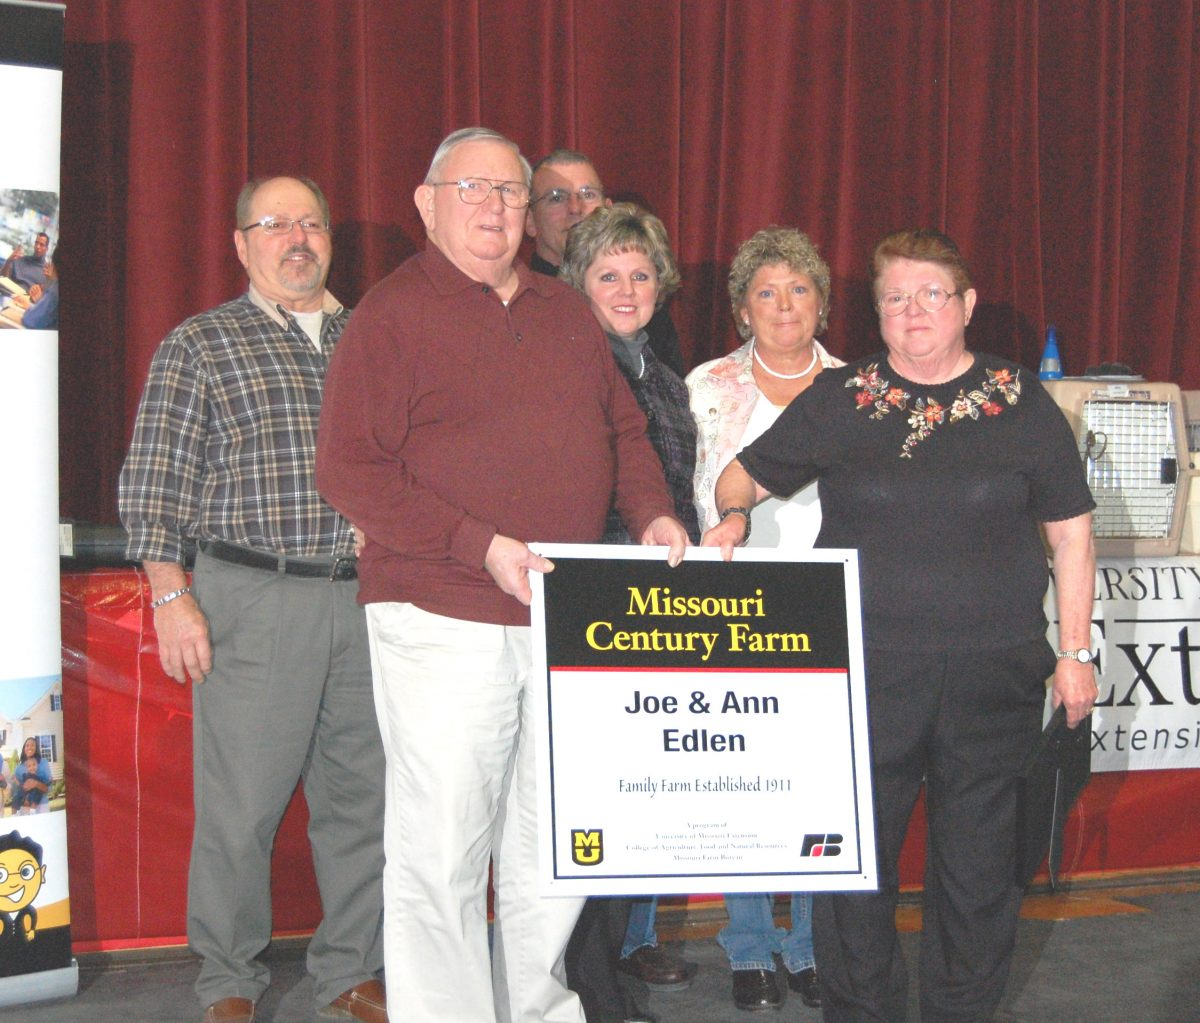 Century Farm-The Joe and Ann Edlen Farm was recognized as a Missouri Century Farm at Farm/City Night on Saturday, February 17. Their farm has been in the same family for more than 100 years.